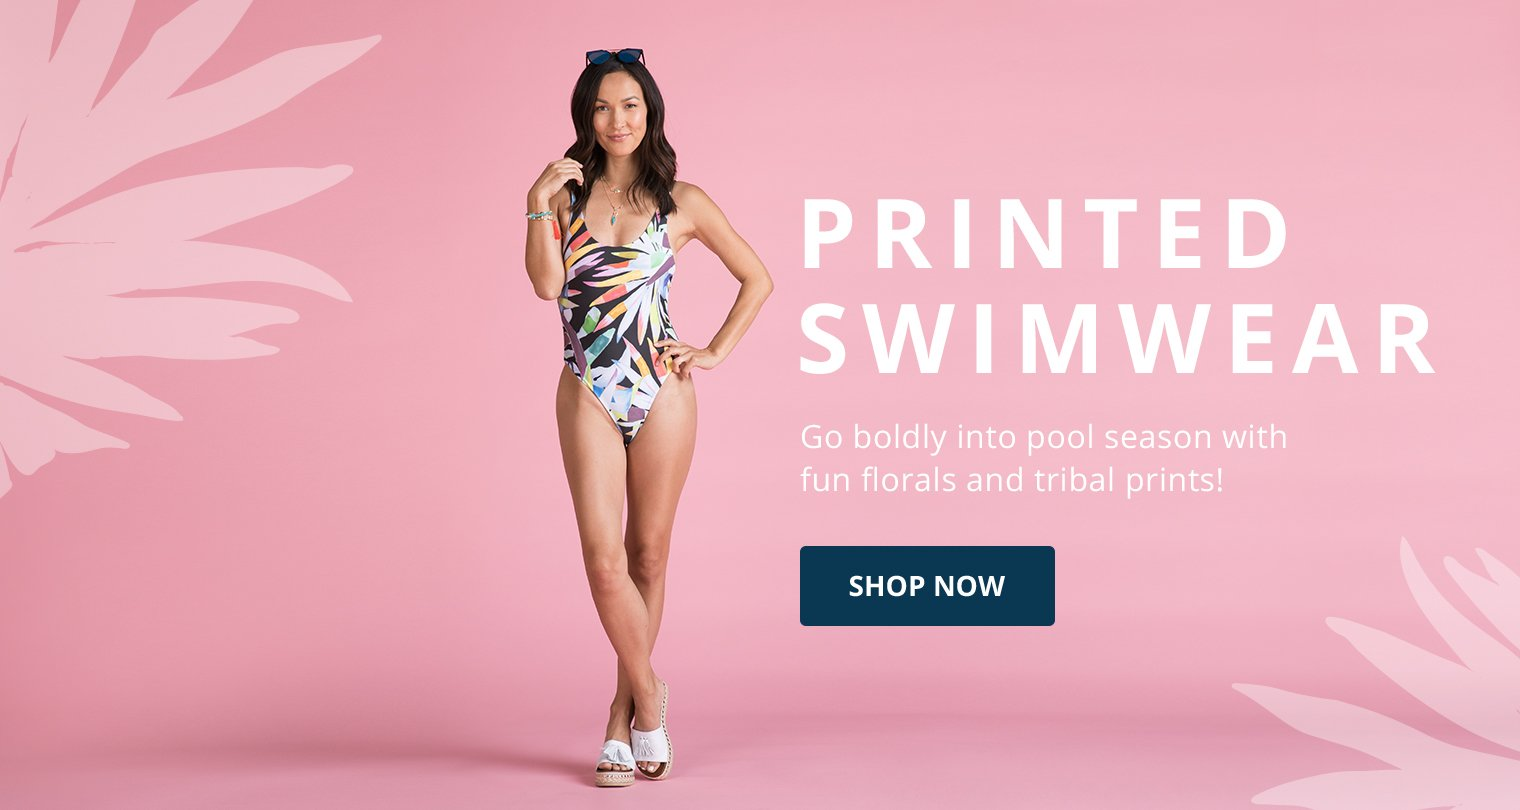 Printed Swimwear. Go boldly into pool season with fun florals and tribal prints! Shop Now.